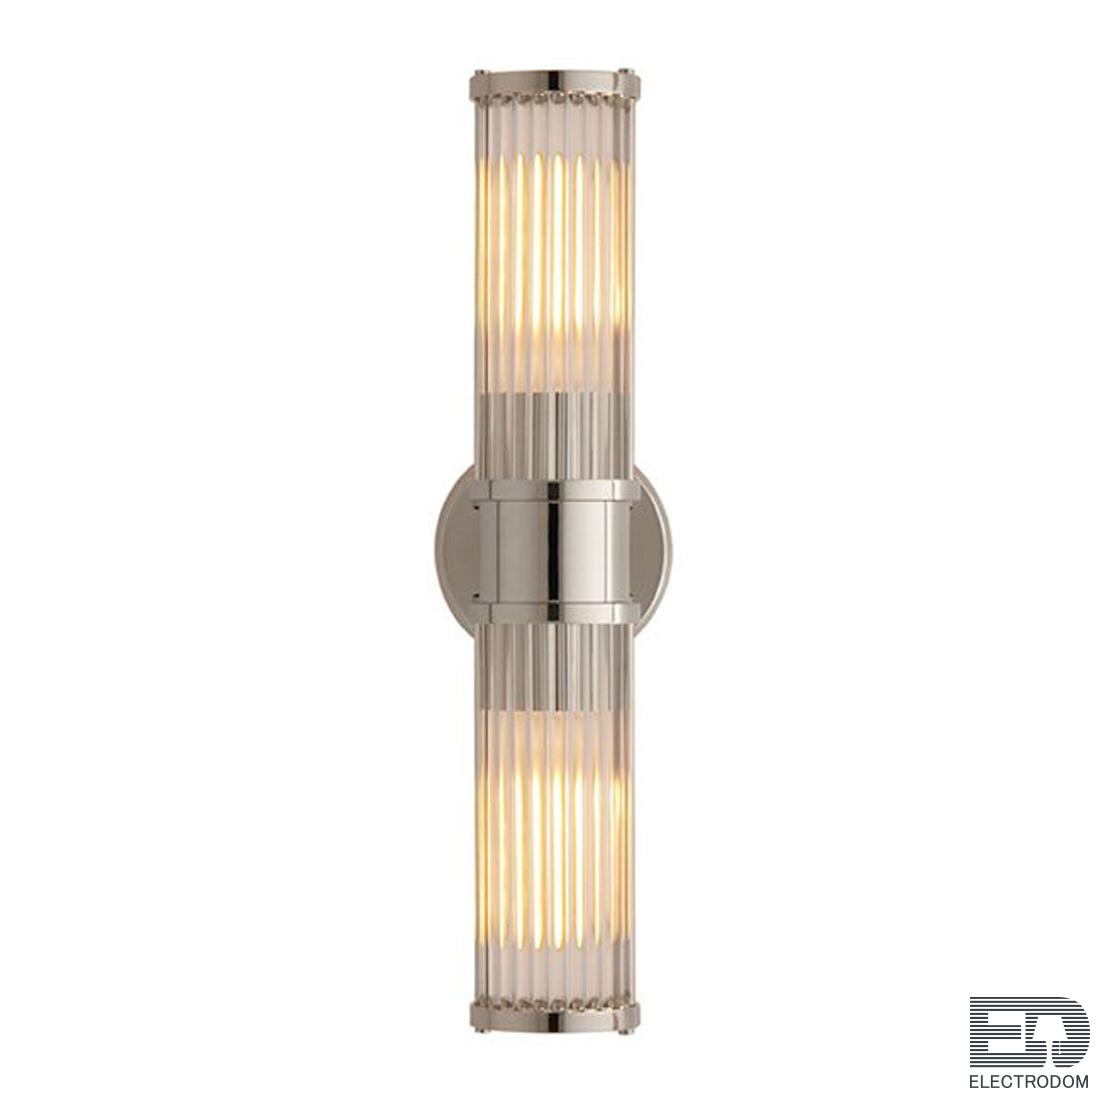 Бра Ralph Lauren Бра Allen Double Light nickel Loft Concept 44.667 - цена и фото